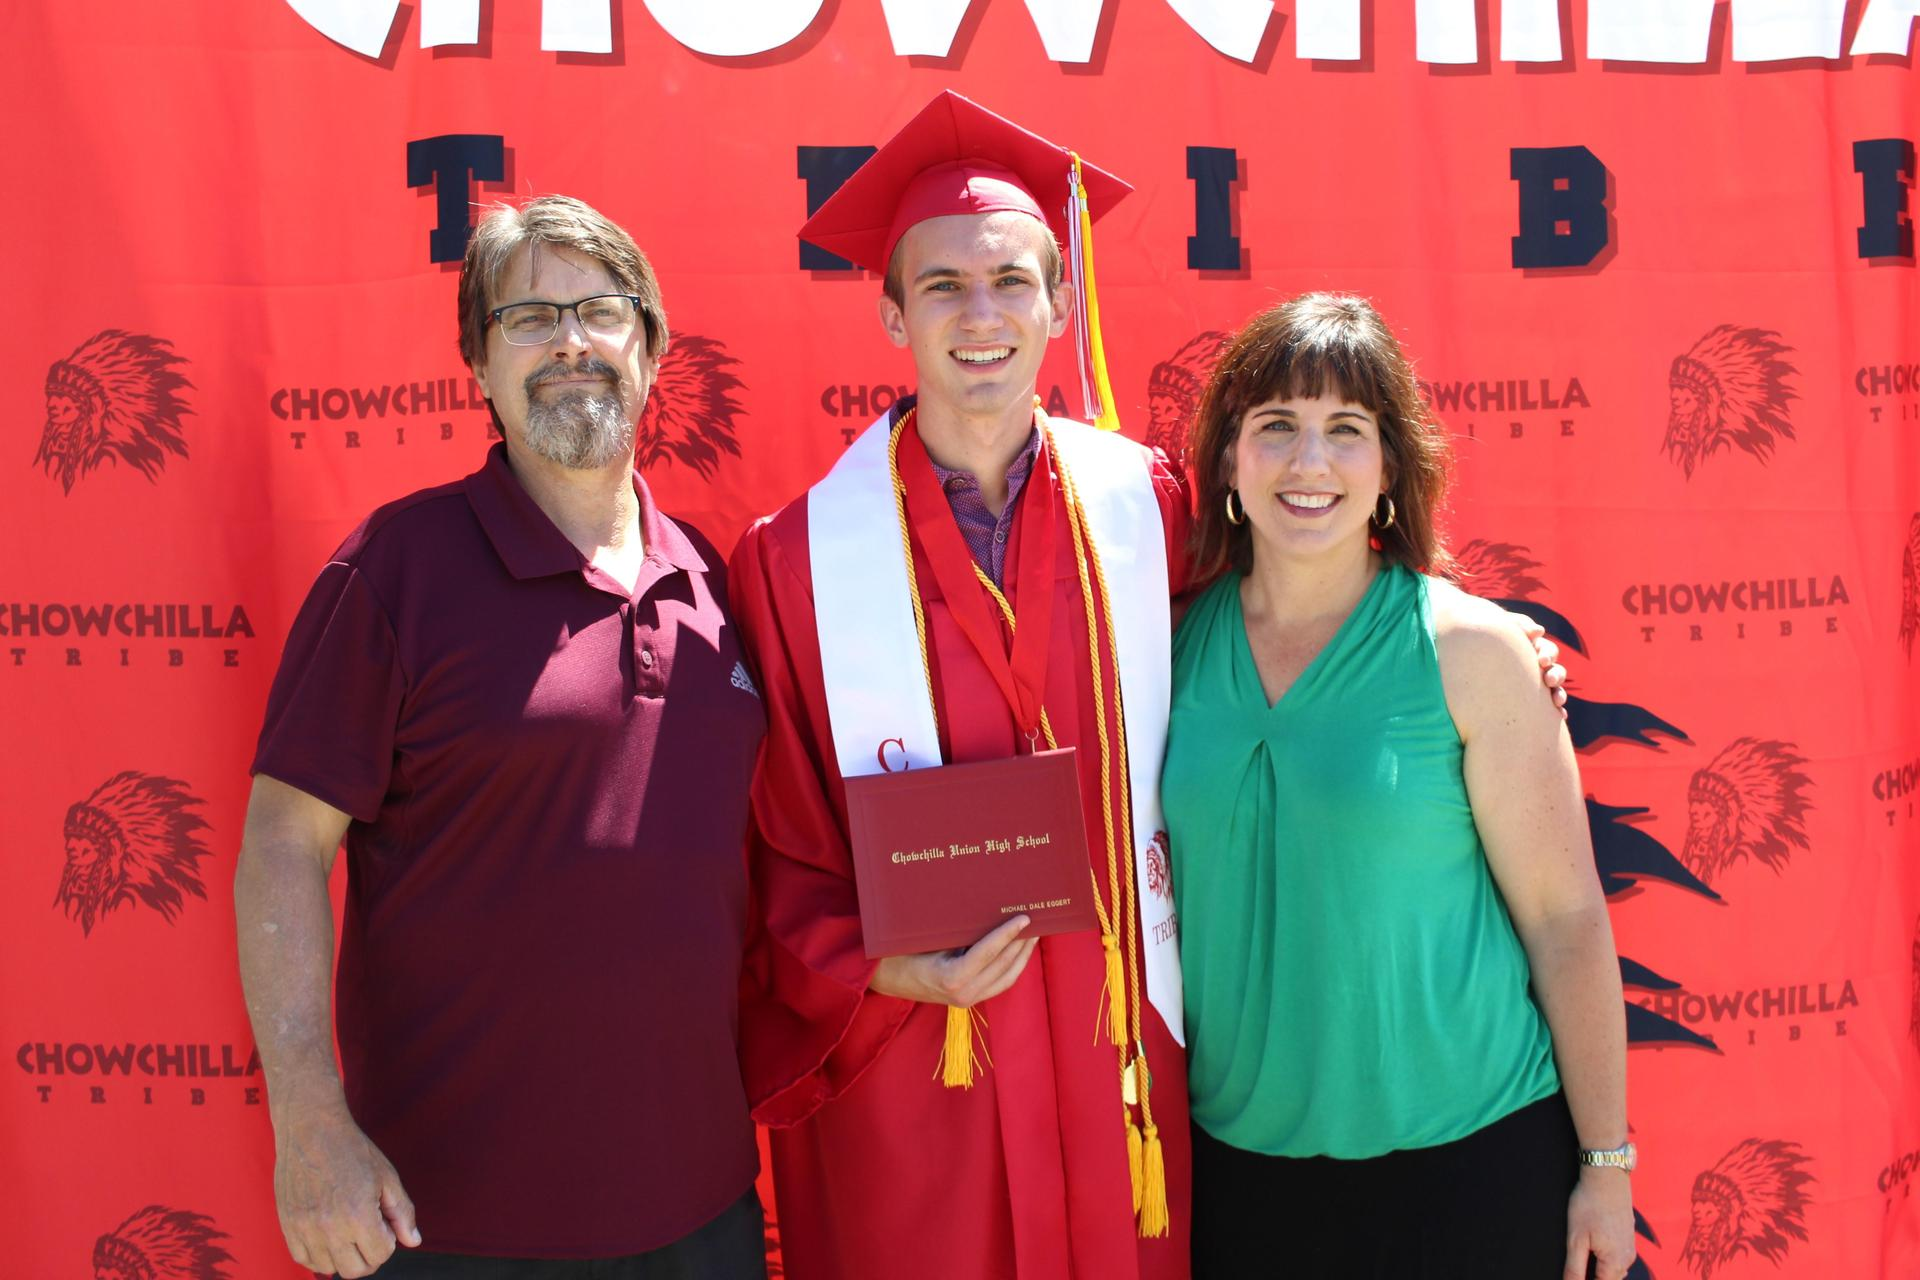 Michael Eggert and family